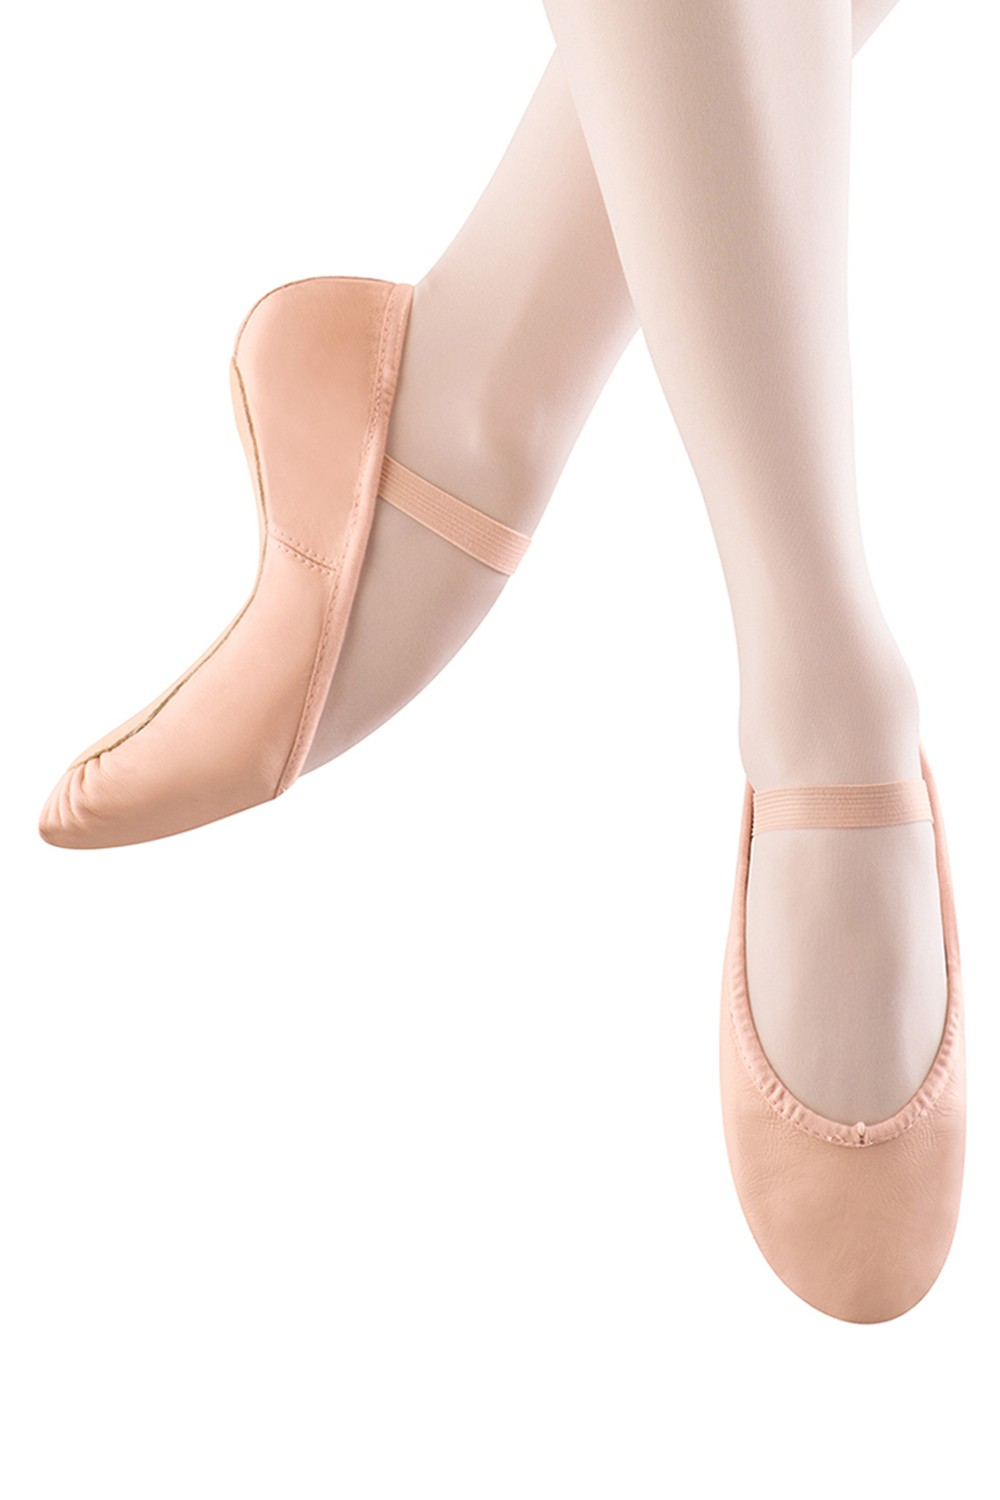 Dansoft - Niños Girl's Ballet Shoes